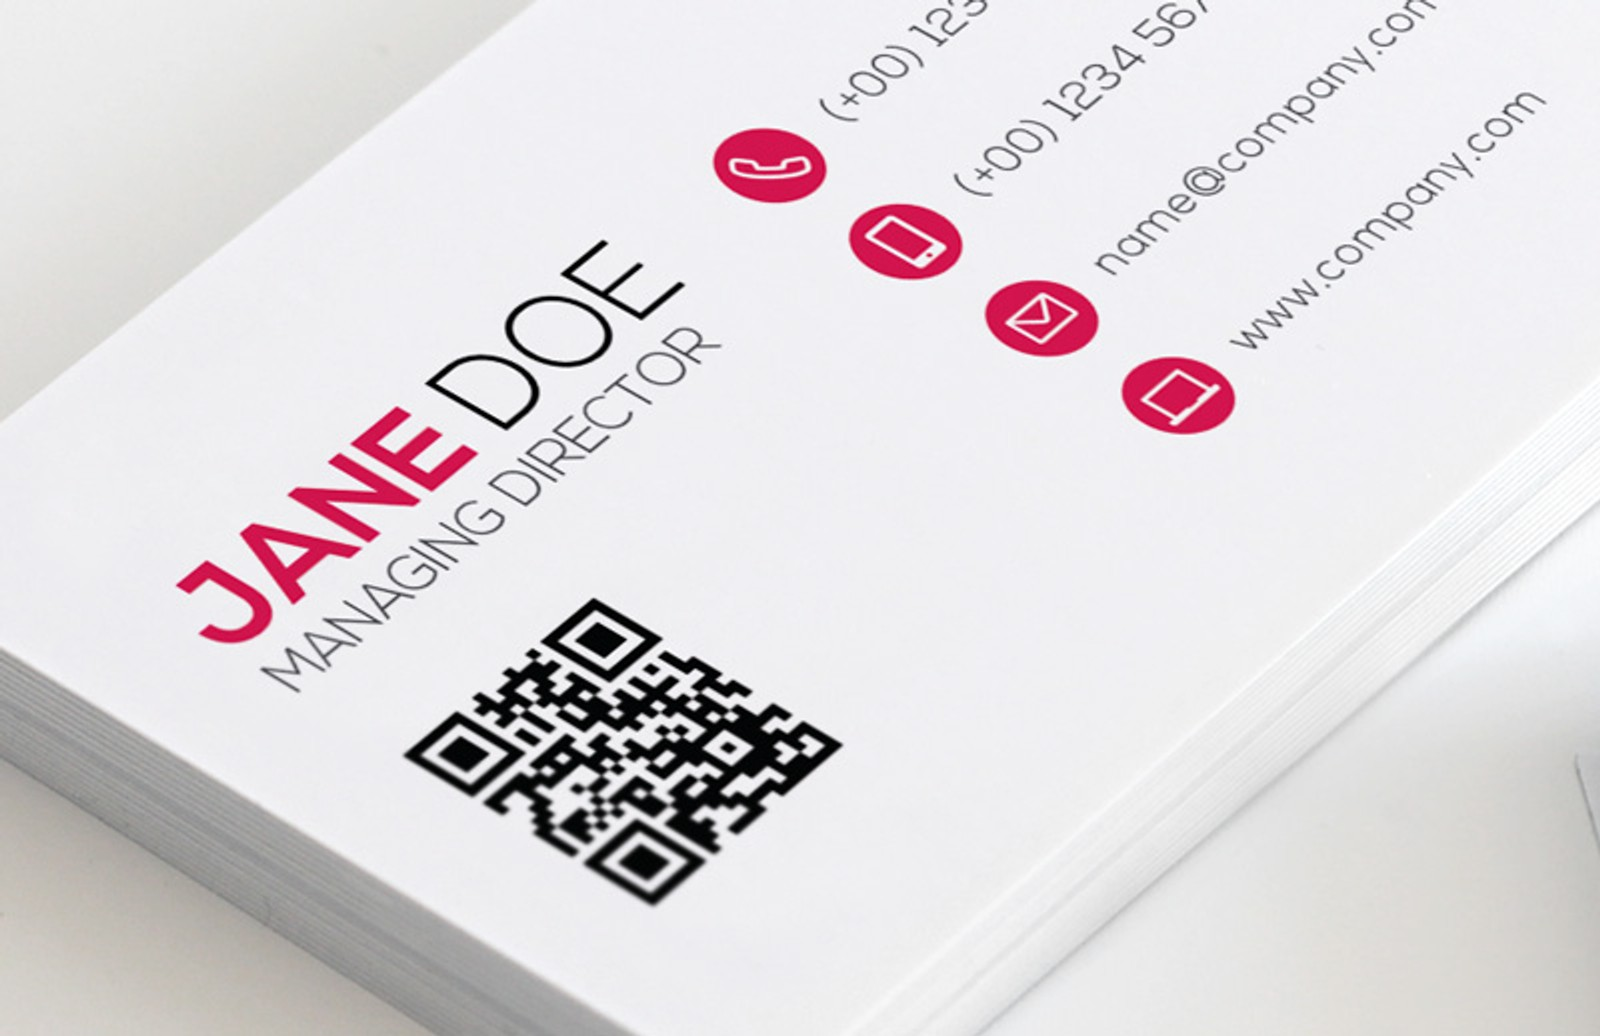 Qr code business card template medialoot qr code business card template vol 2 colourmoves